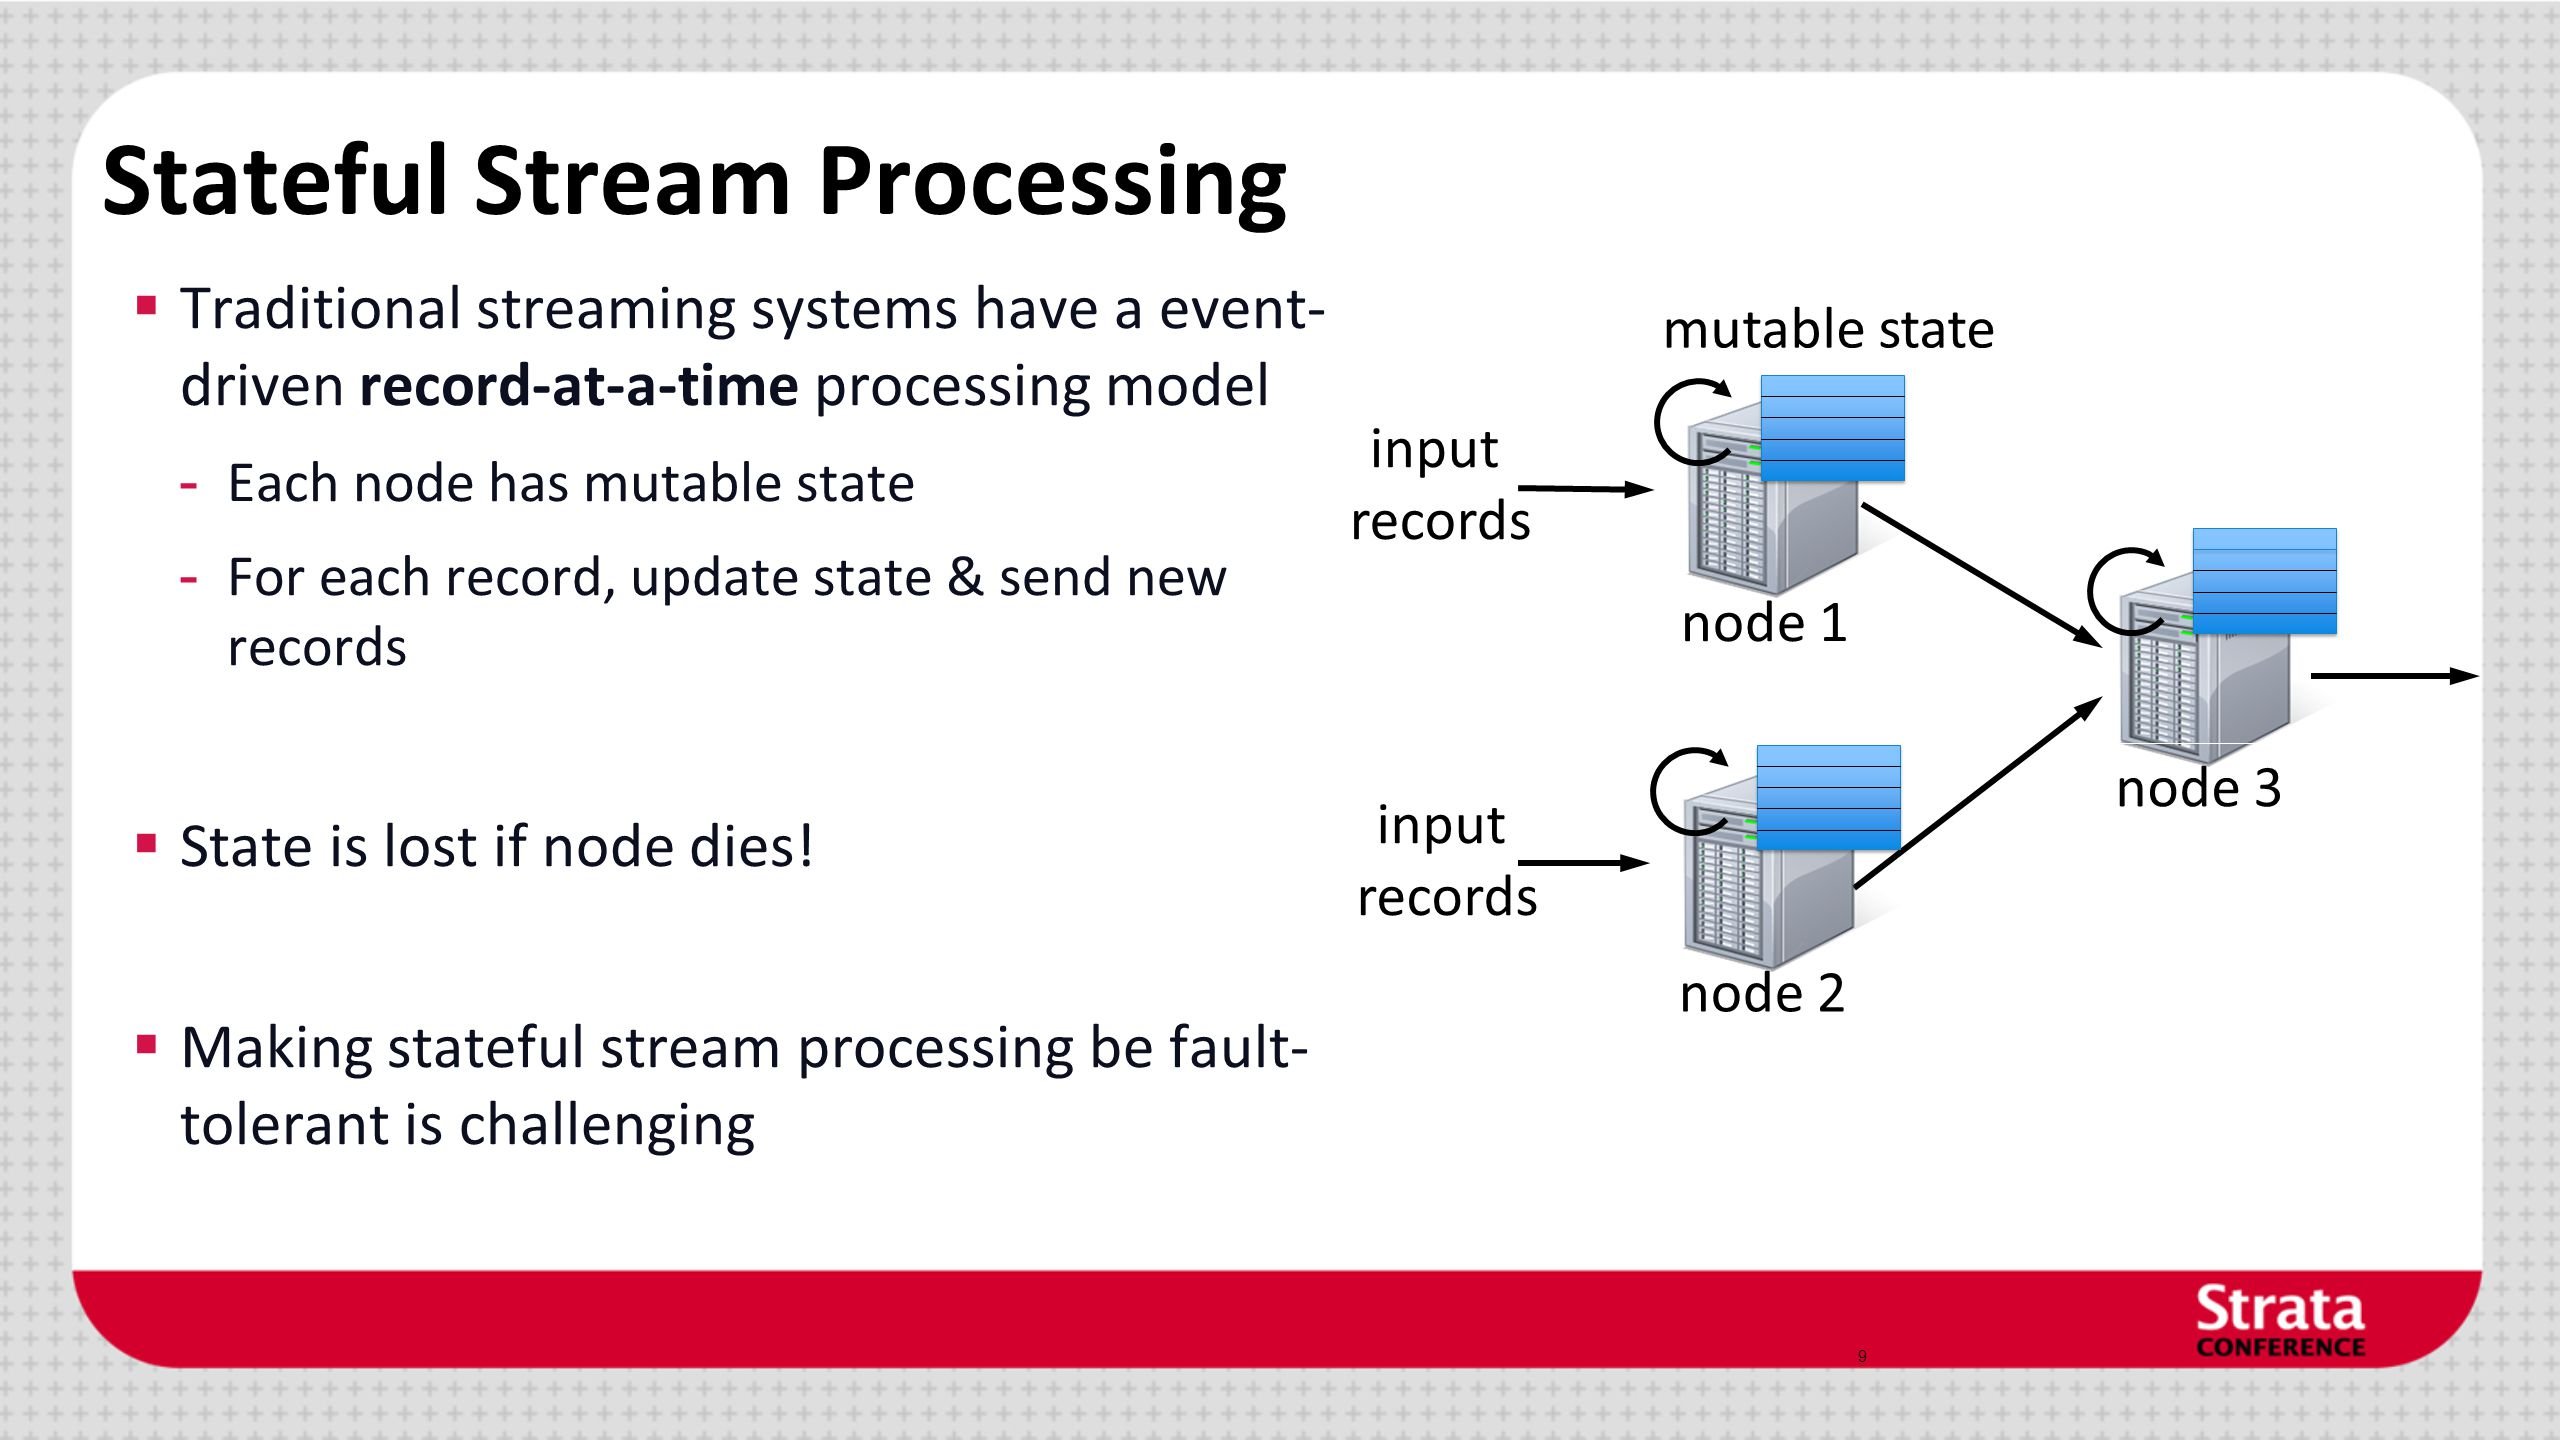 Performance Can process 6 GB/sec (60M records/sec) of data on 100 nodes at sub-second latency - Tested with 100 streams of data on 100 EC2 instances with 4 cores each 30